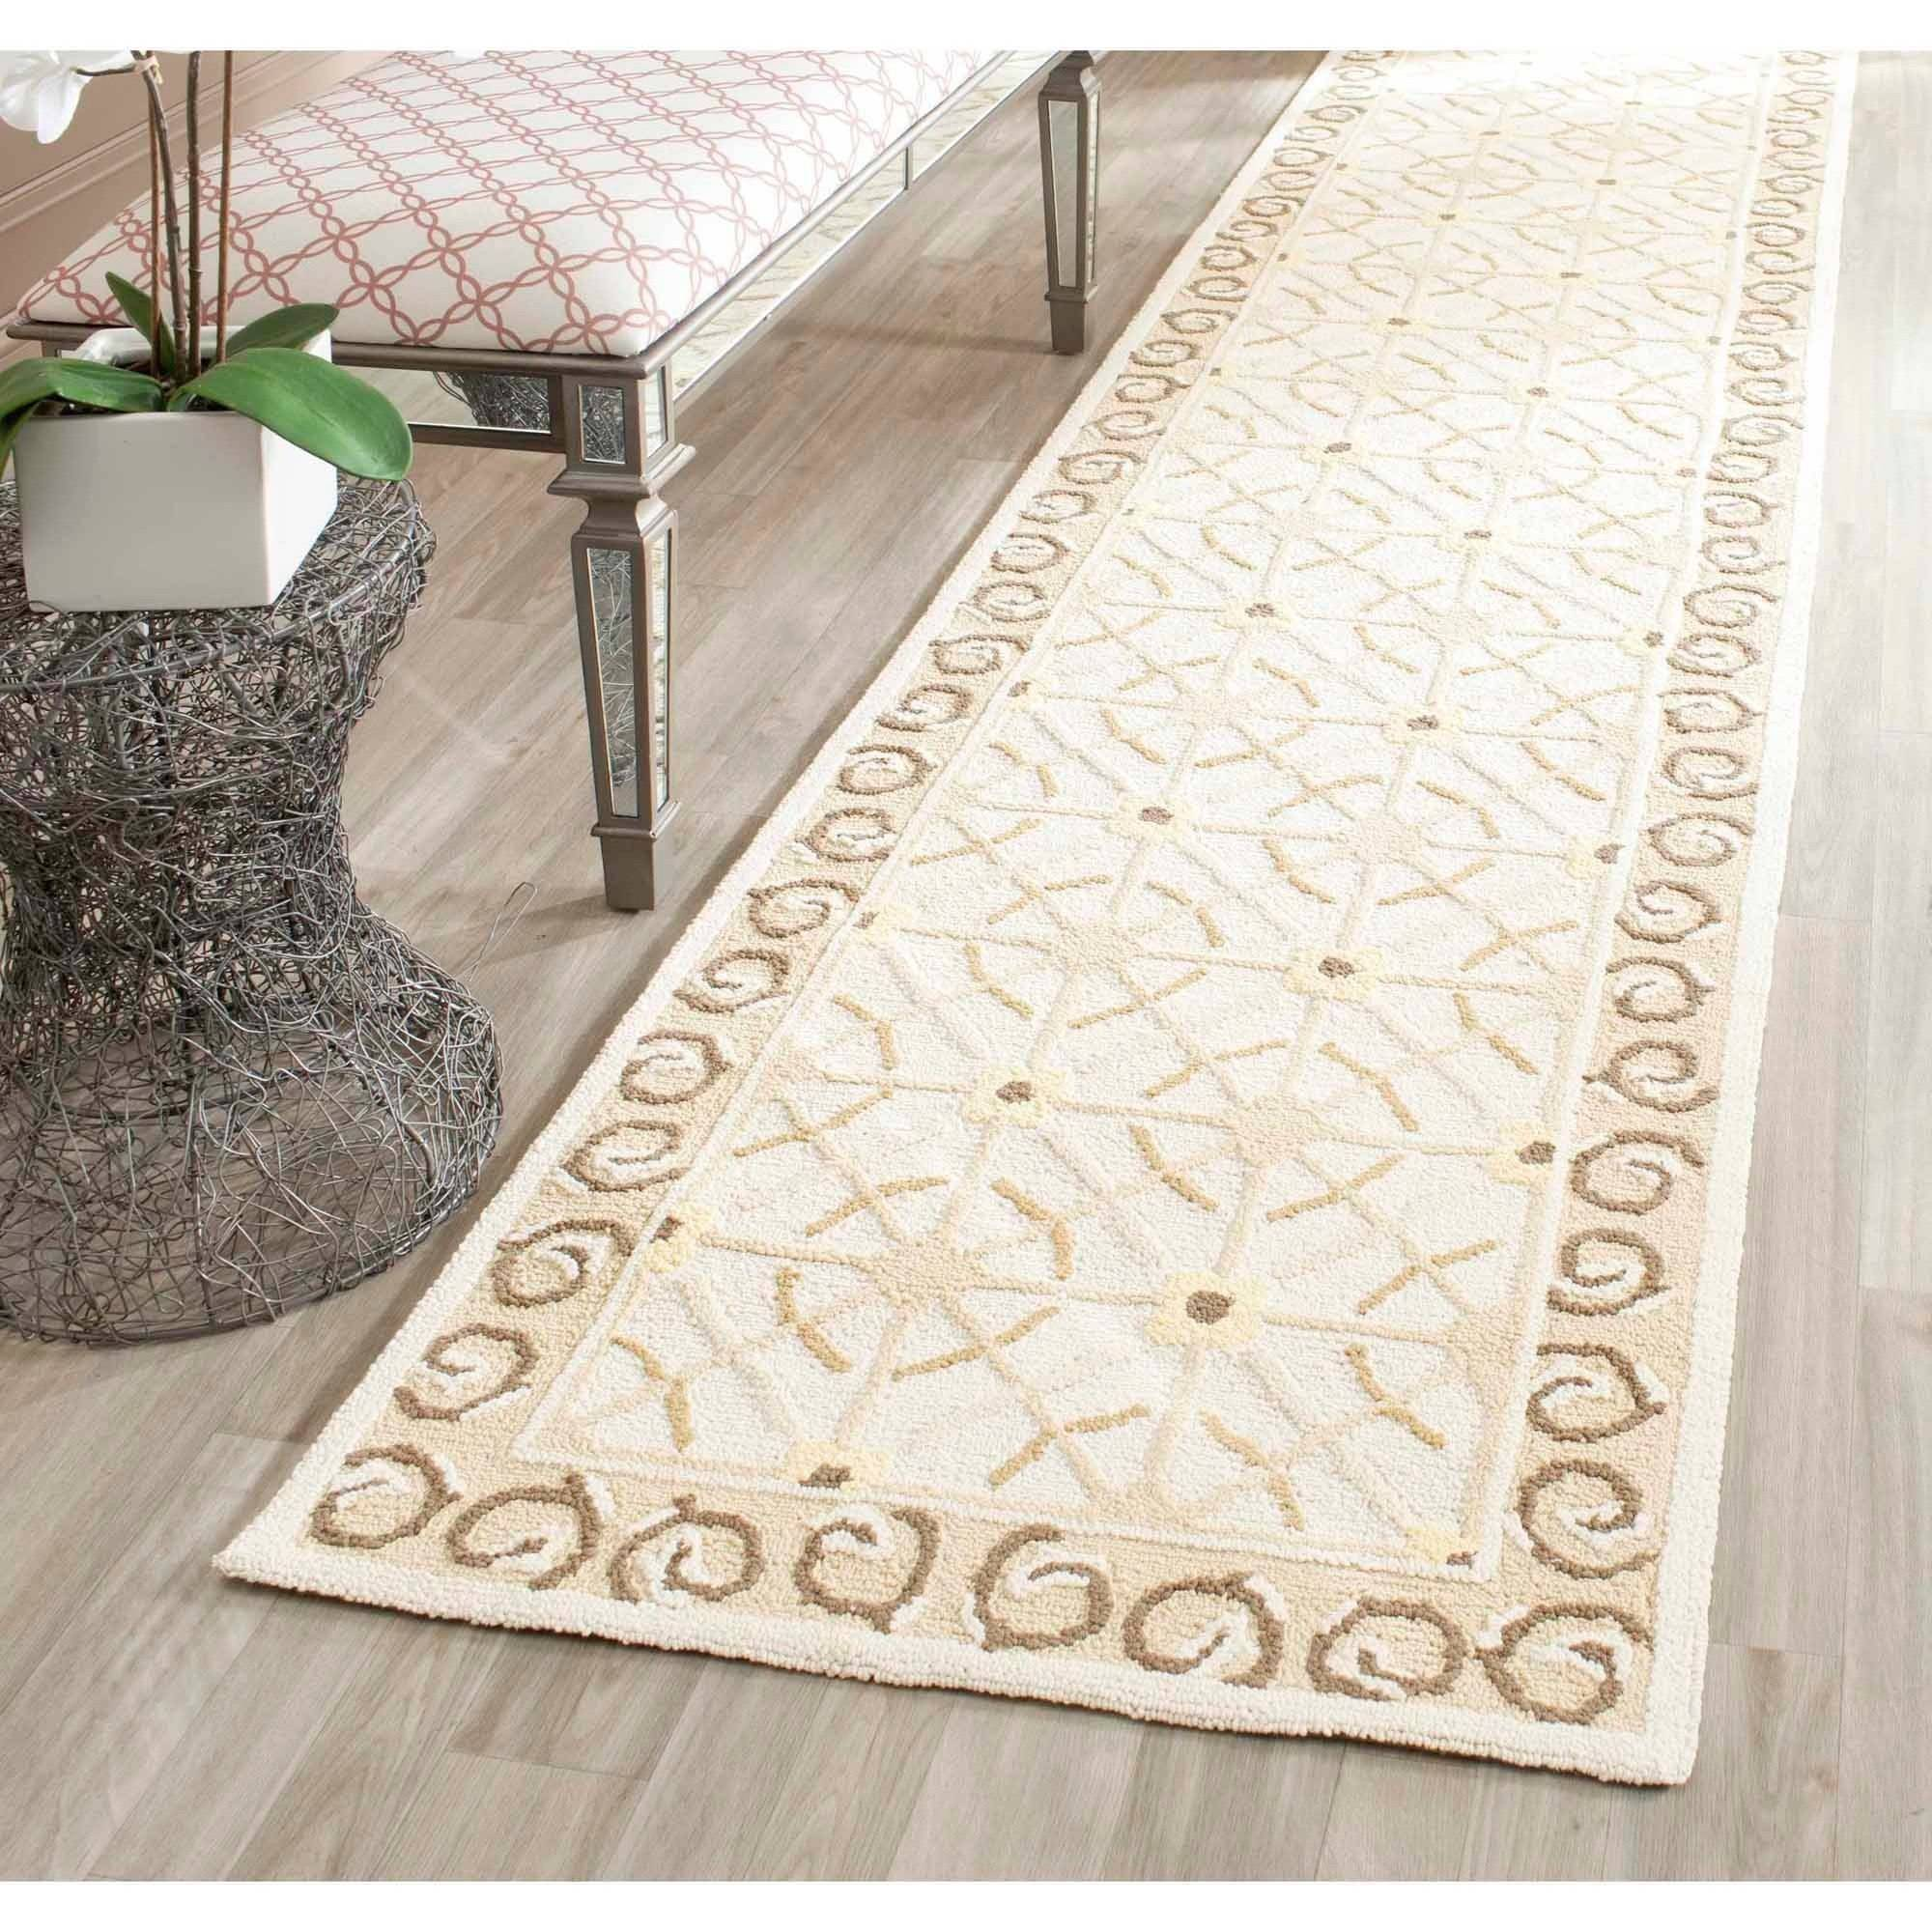 Safavieh Newport Averill Hand Hooked Cotton Runner Rug